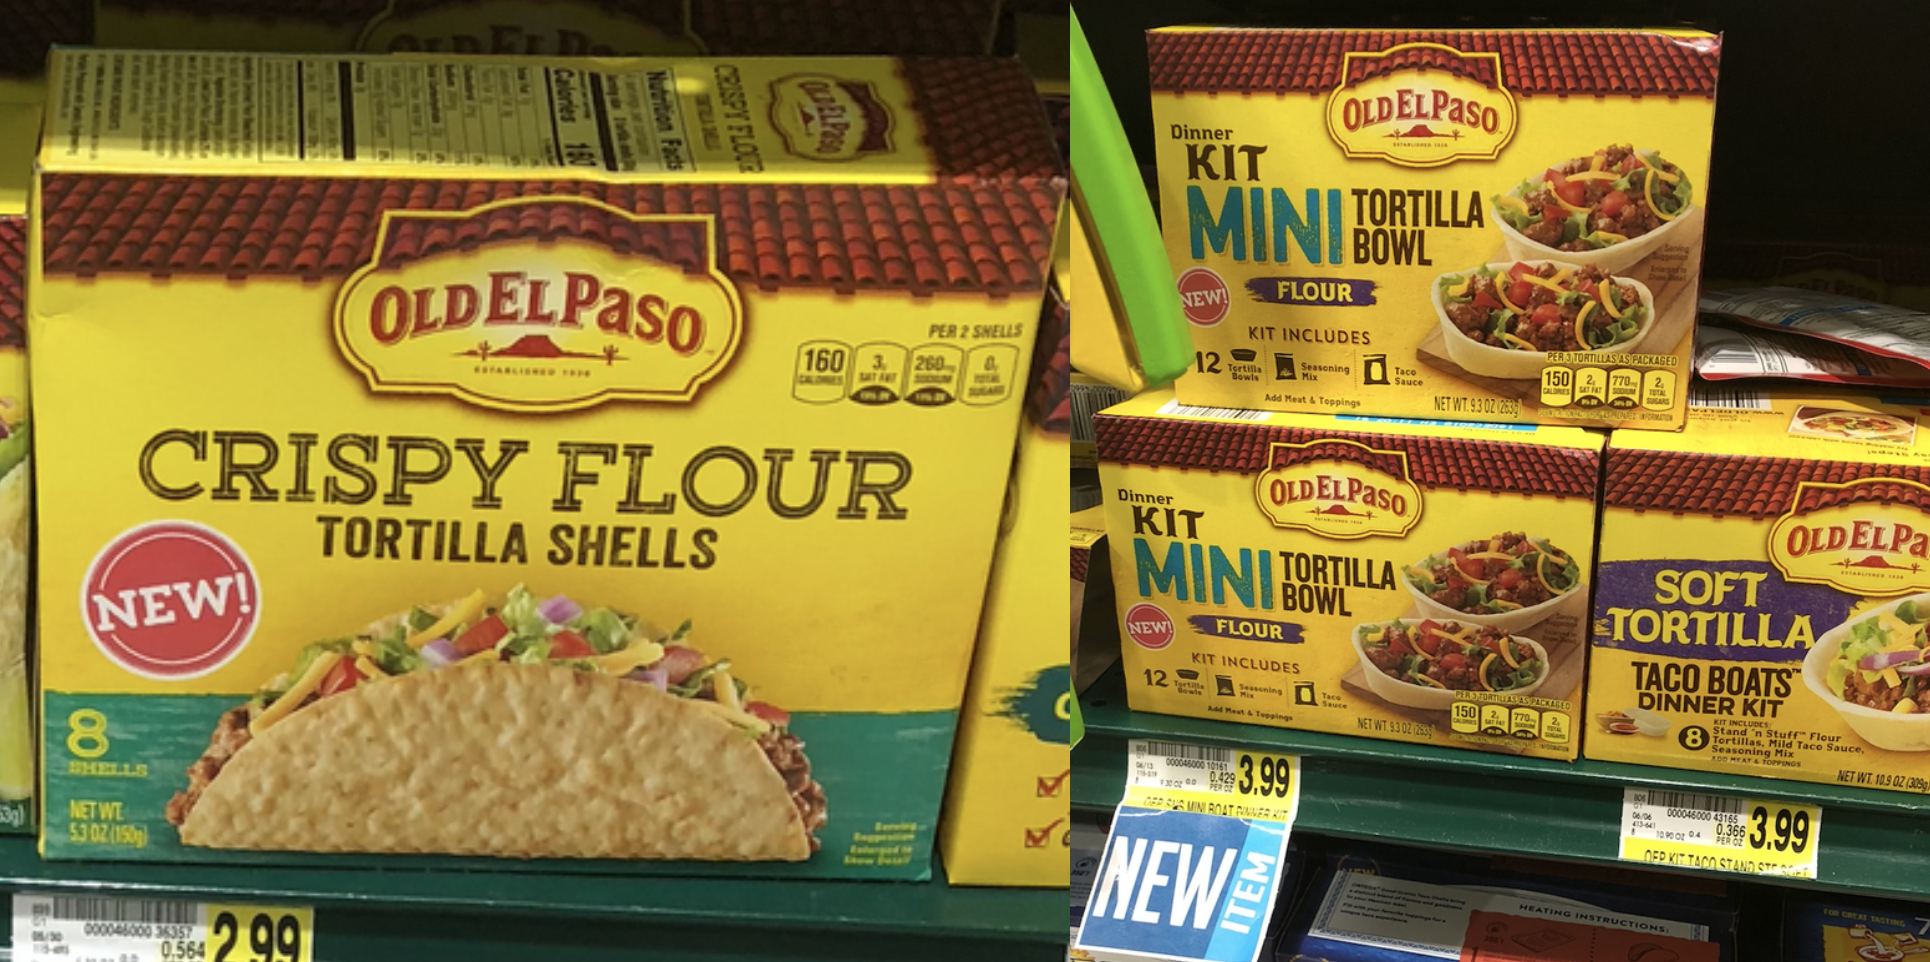 New Old El Paso Coupons - Moola Saving Mom - Free Printable Old El Paso Coupons